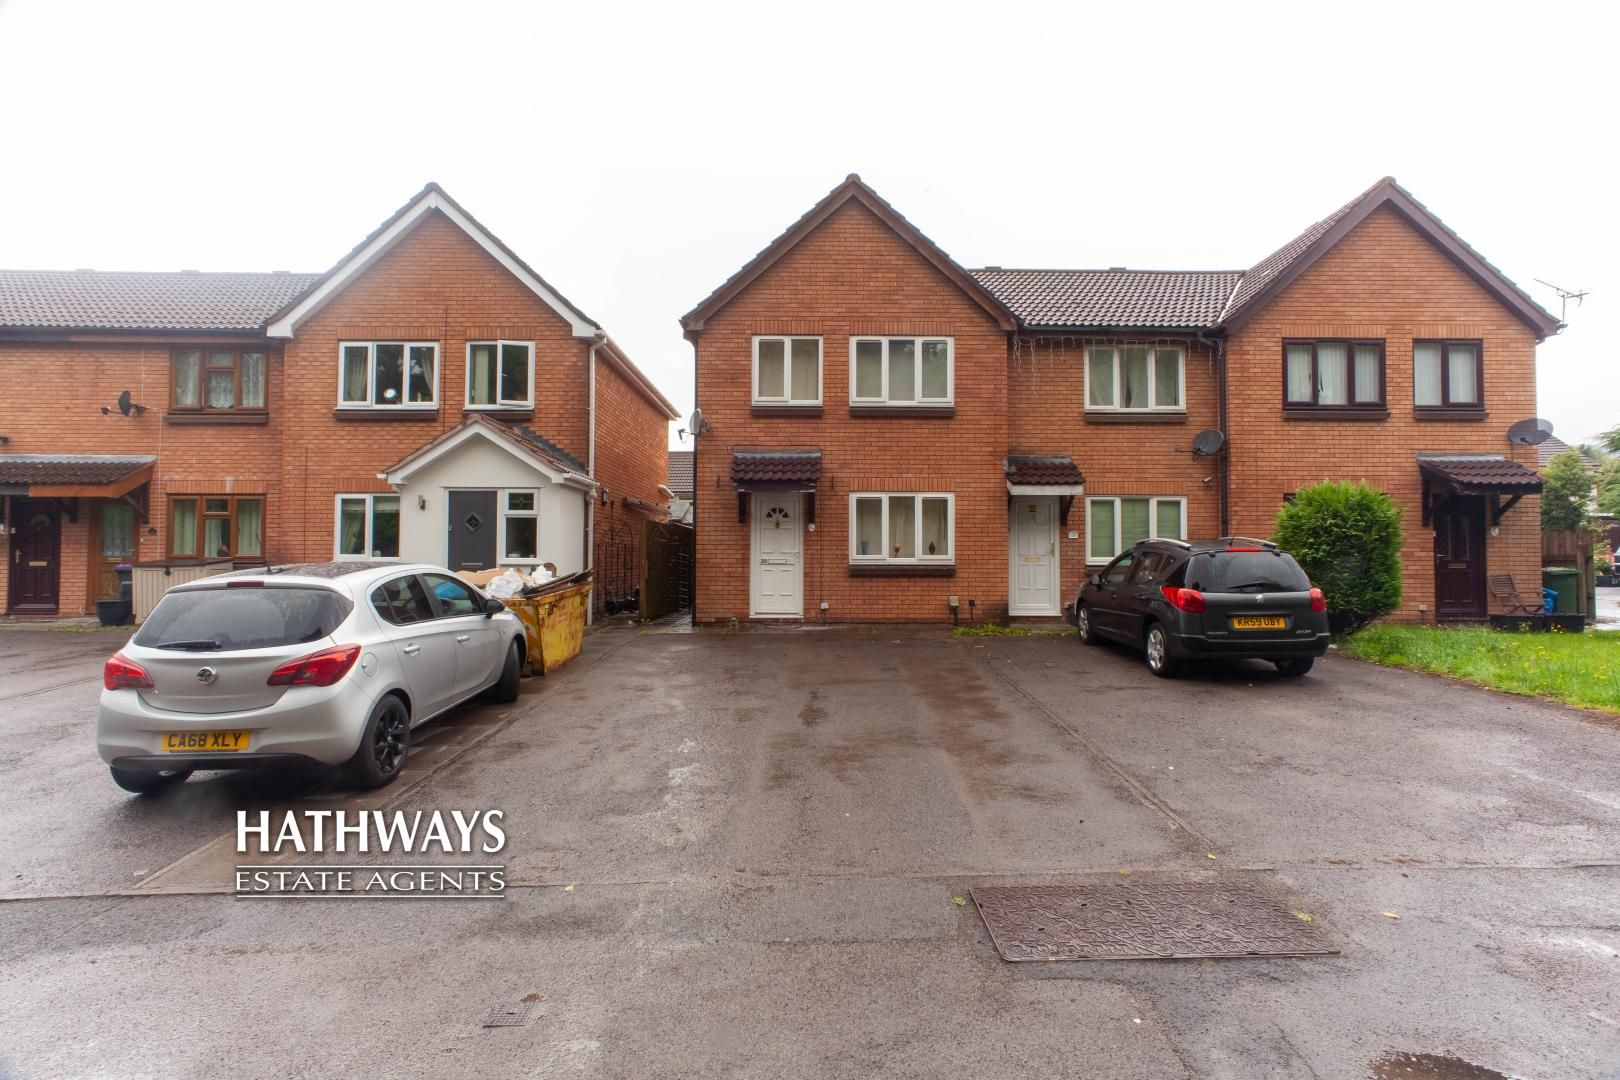 3 bed house for sale in Abbey Road, NP44